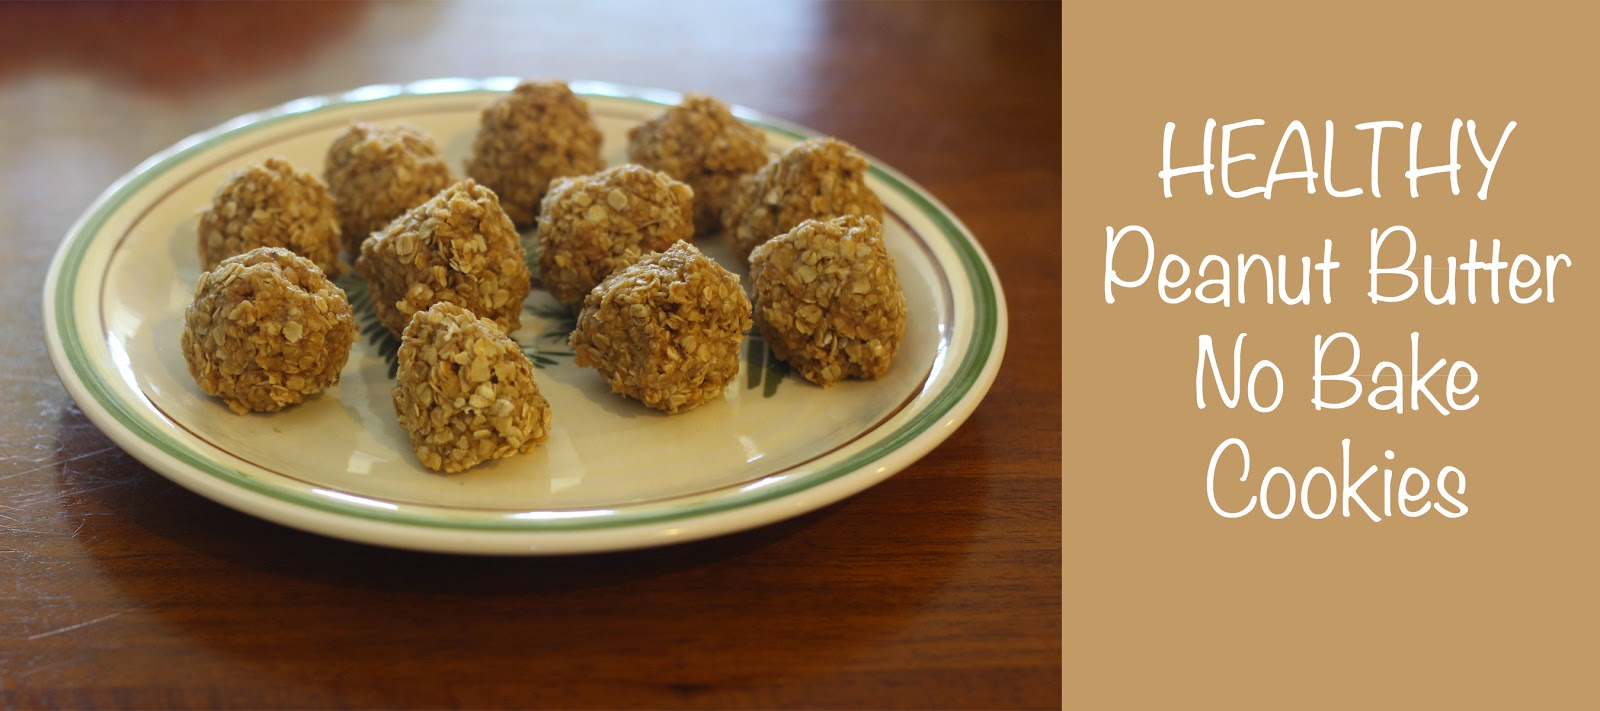 Healthy Peanut Butter No Bake Cookie Recipe